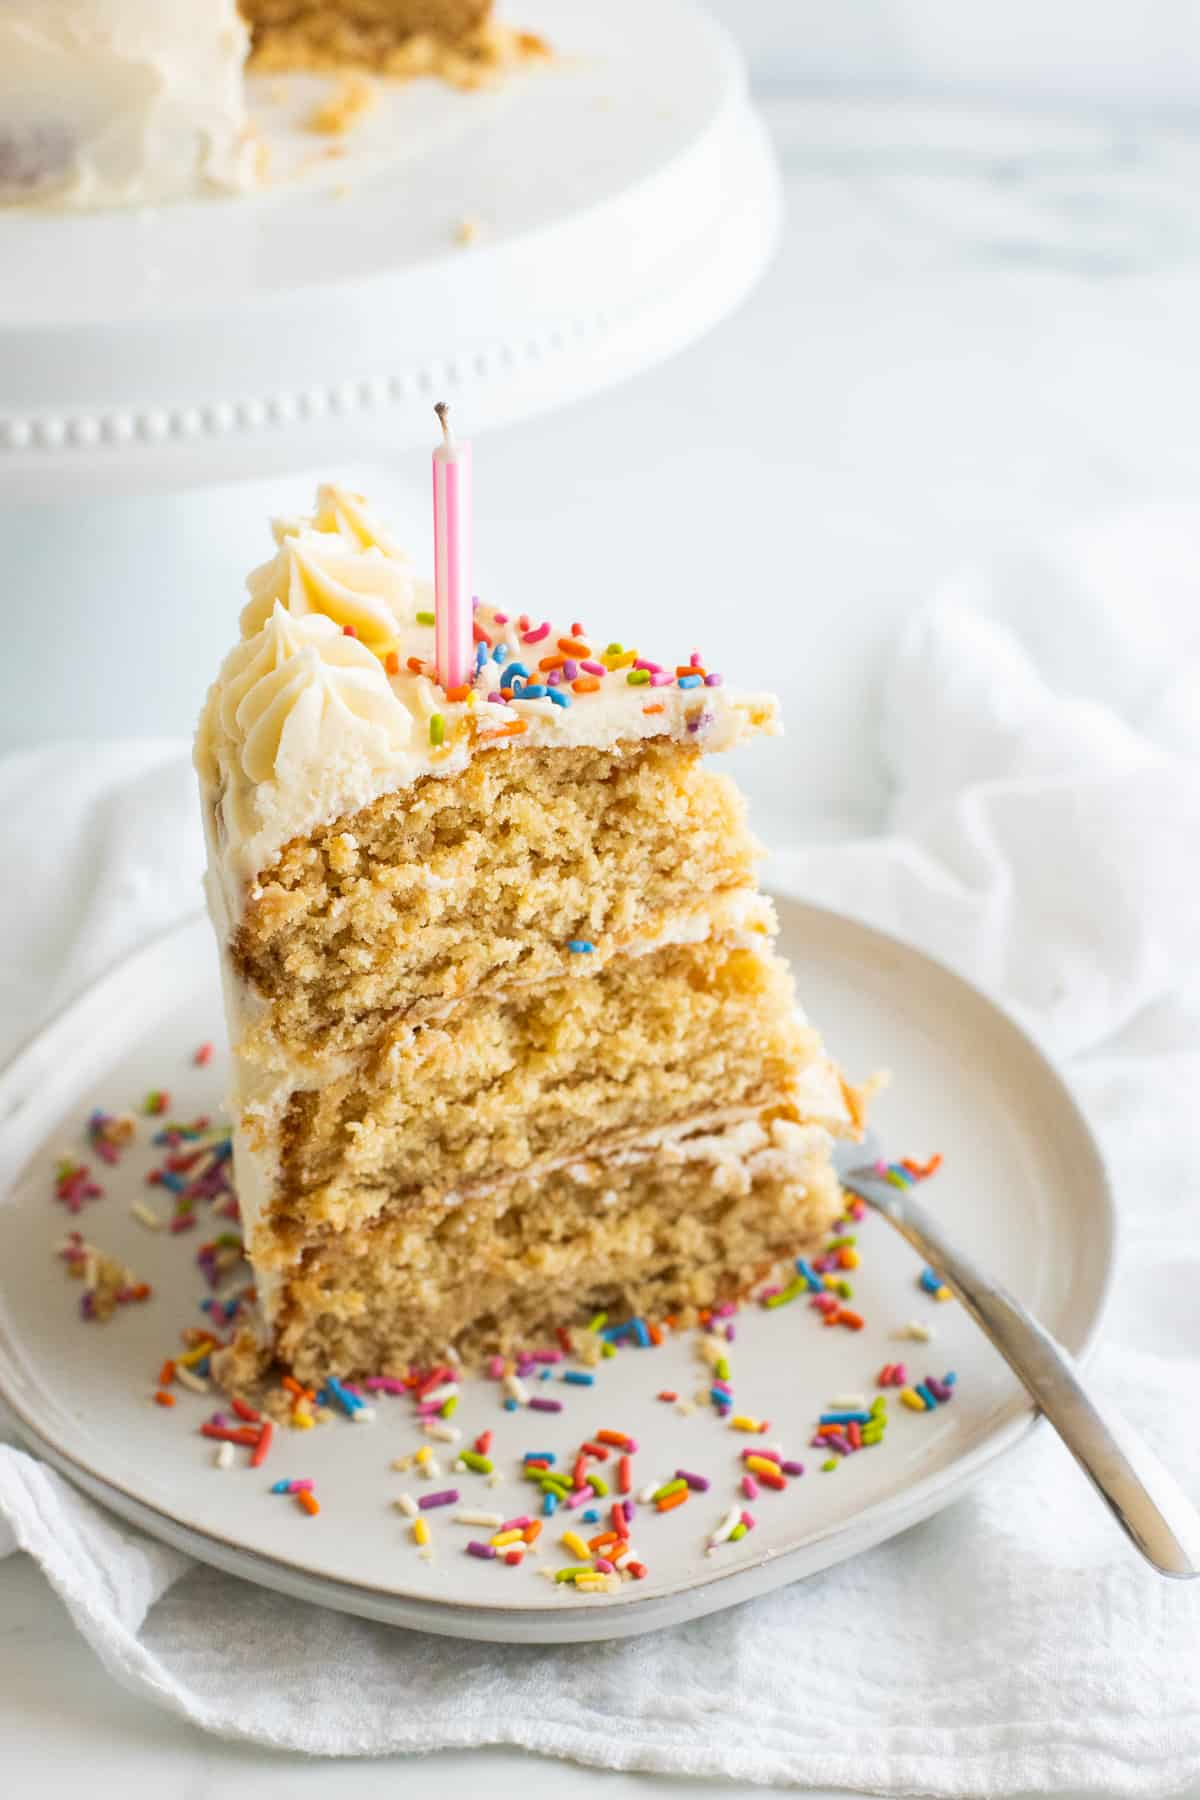 a slice of vegan birthday cake with a candle and sprinkles on a beige plate